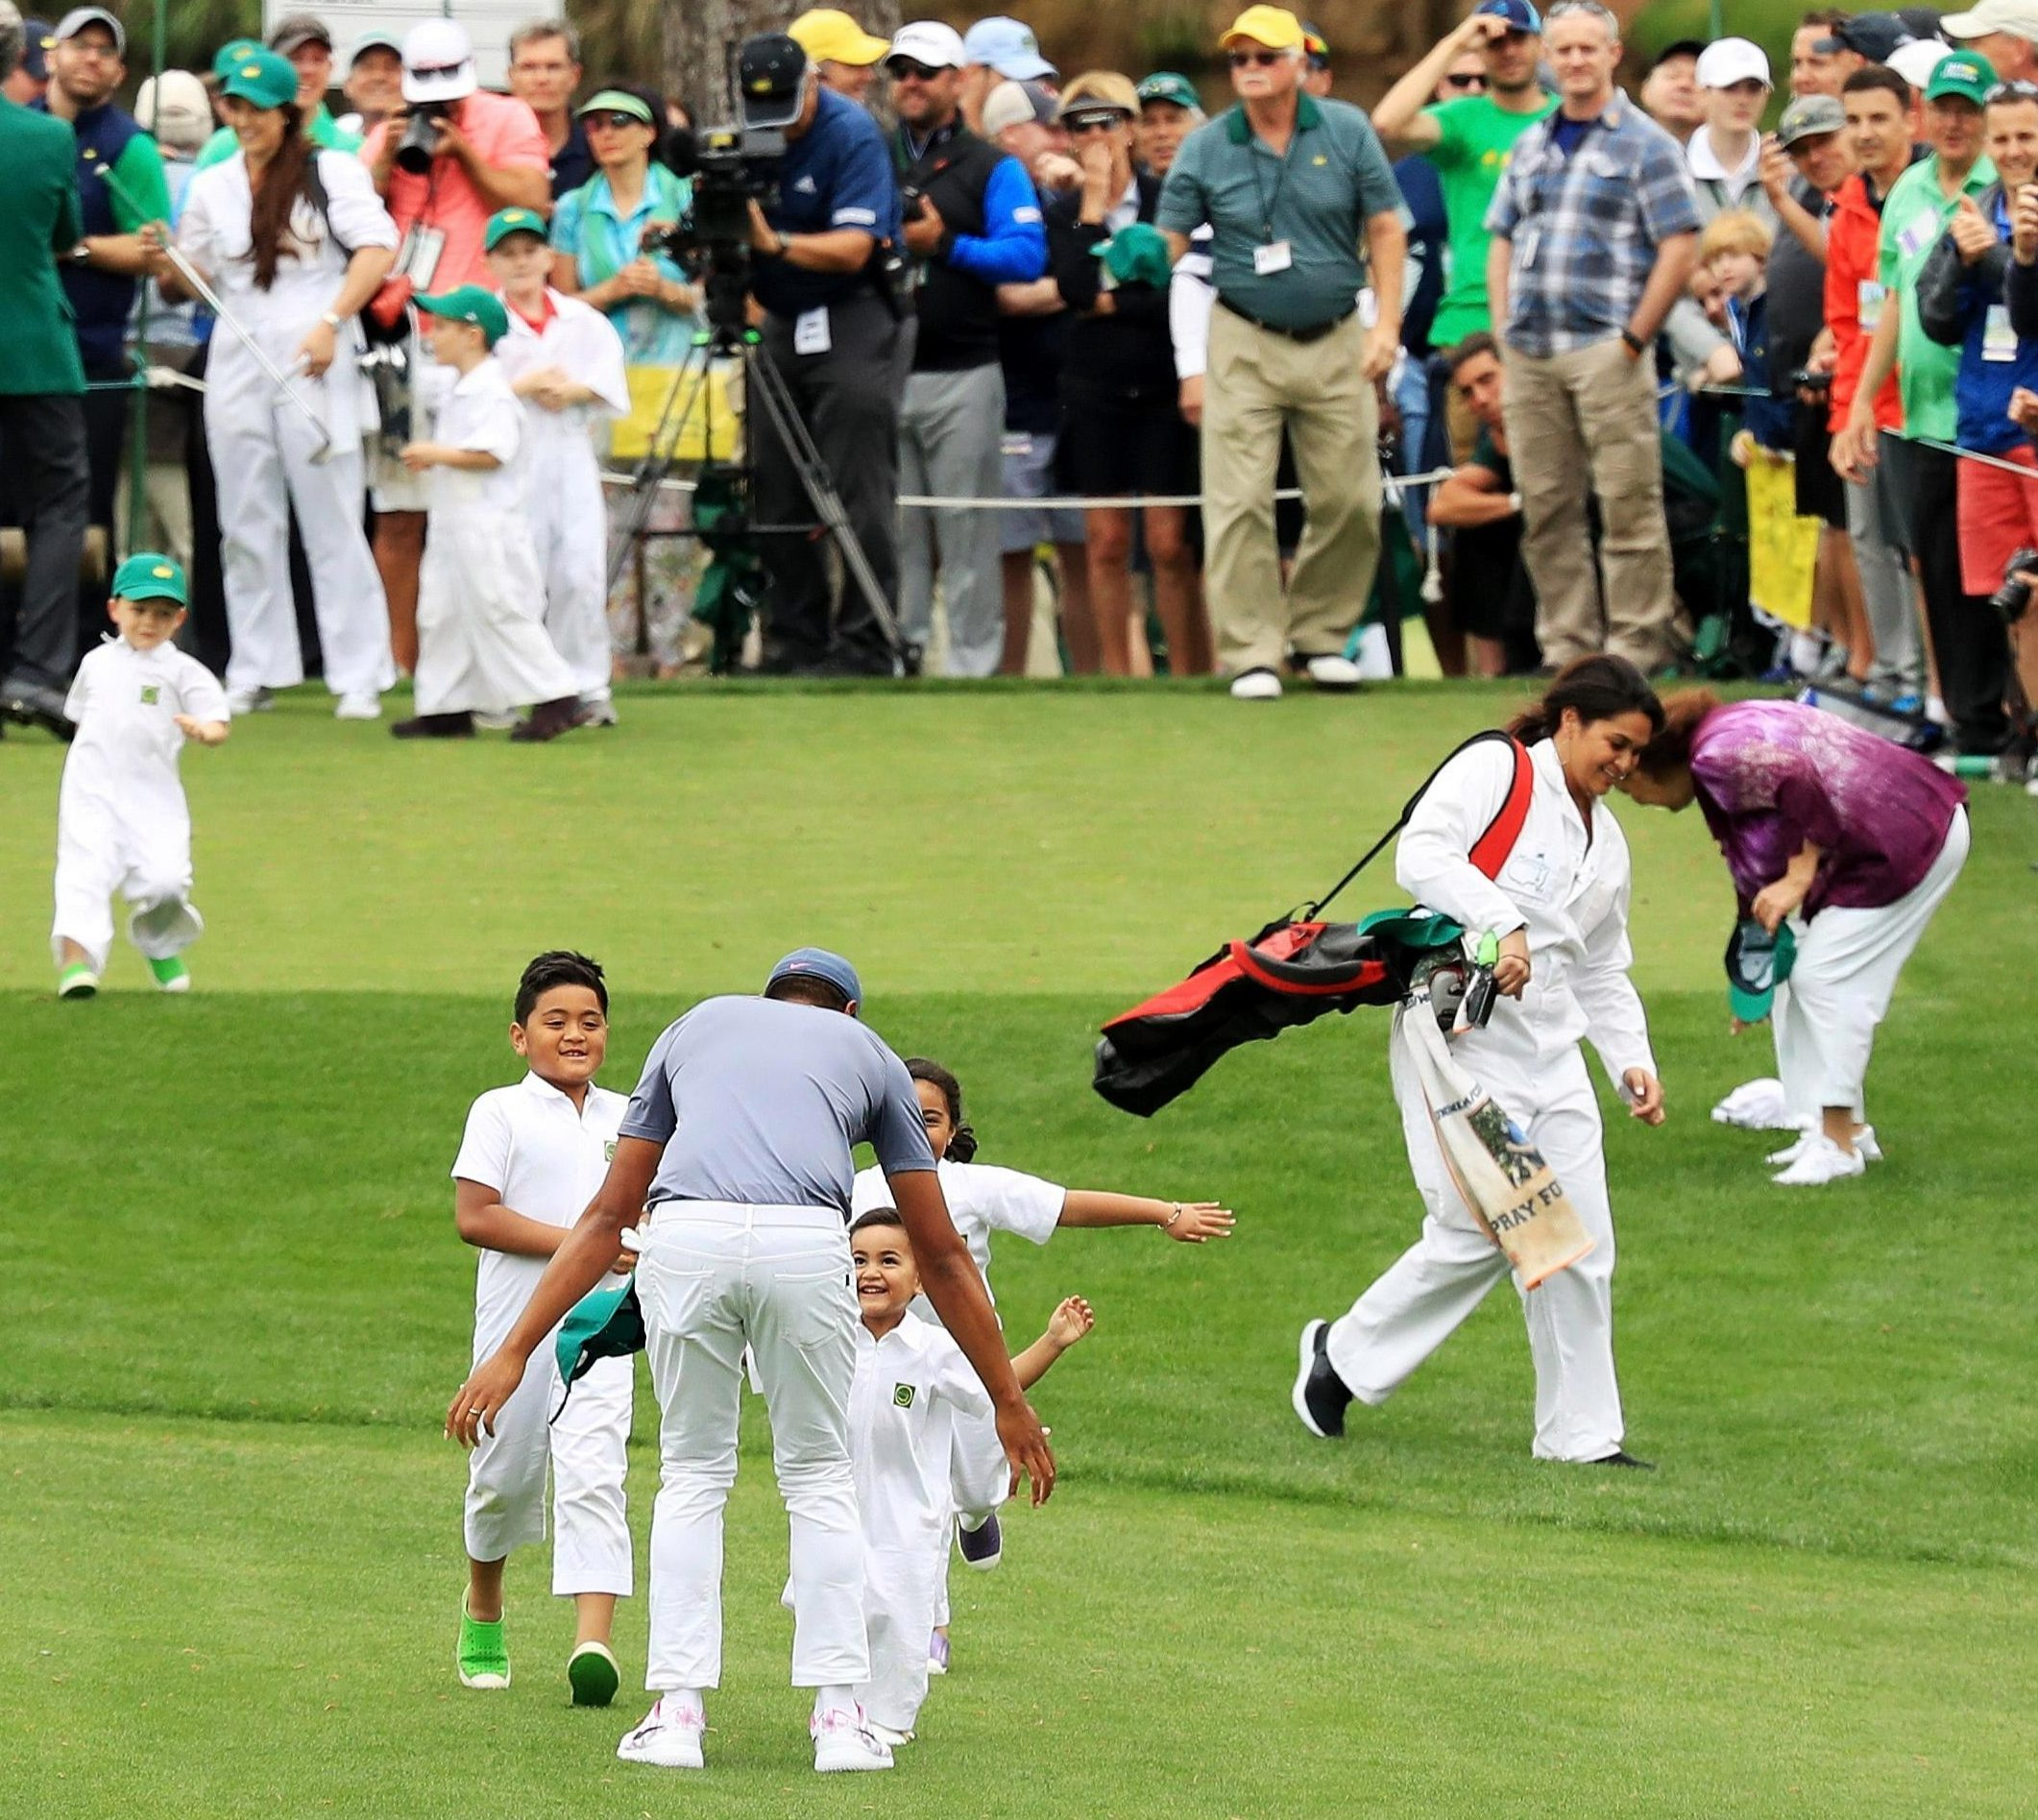 Somehow the golfer manages to walk back up the fairway to greet his family who had raced to join him in celebrating